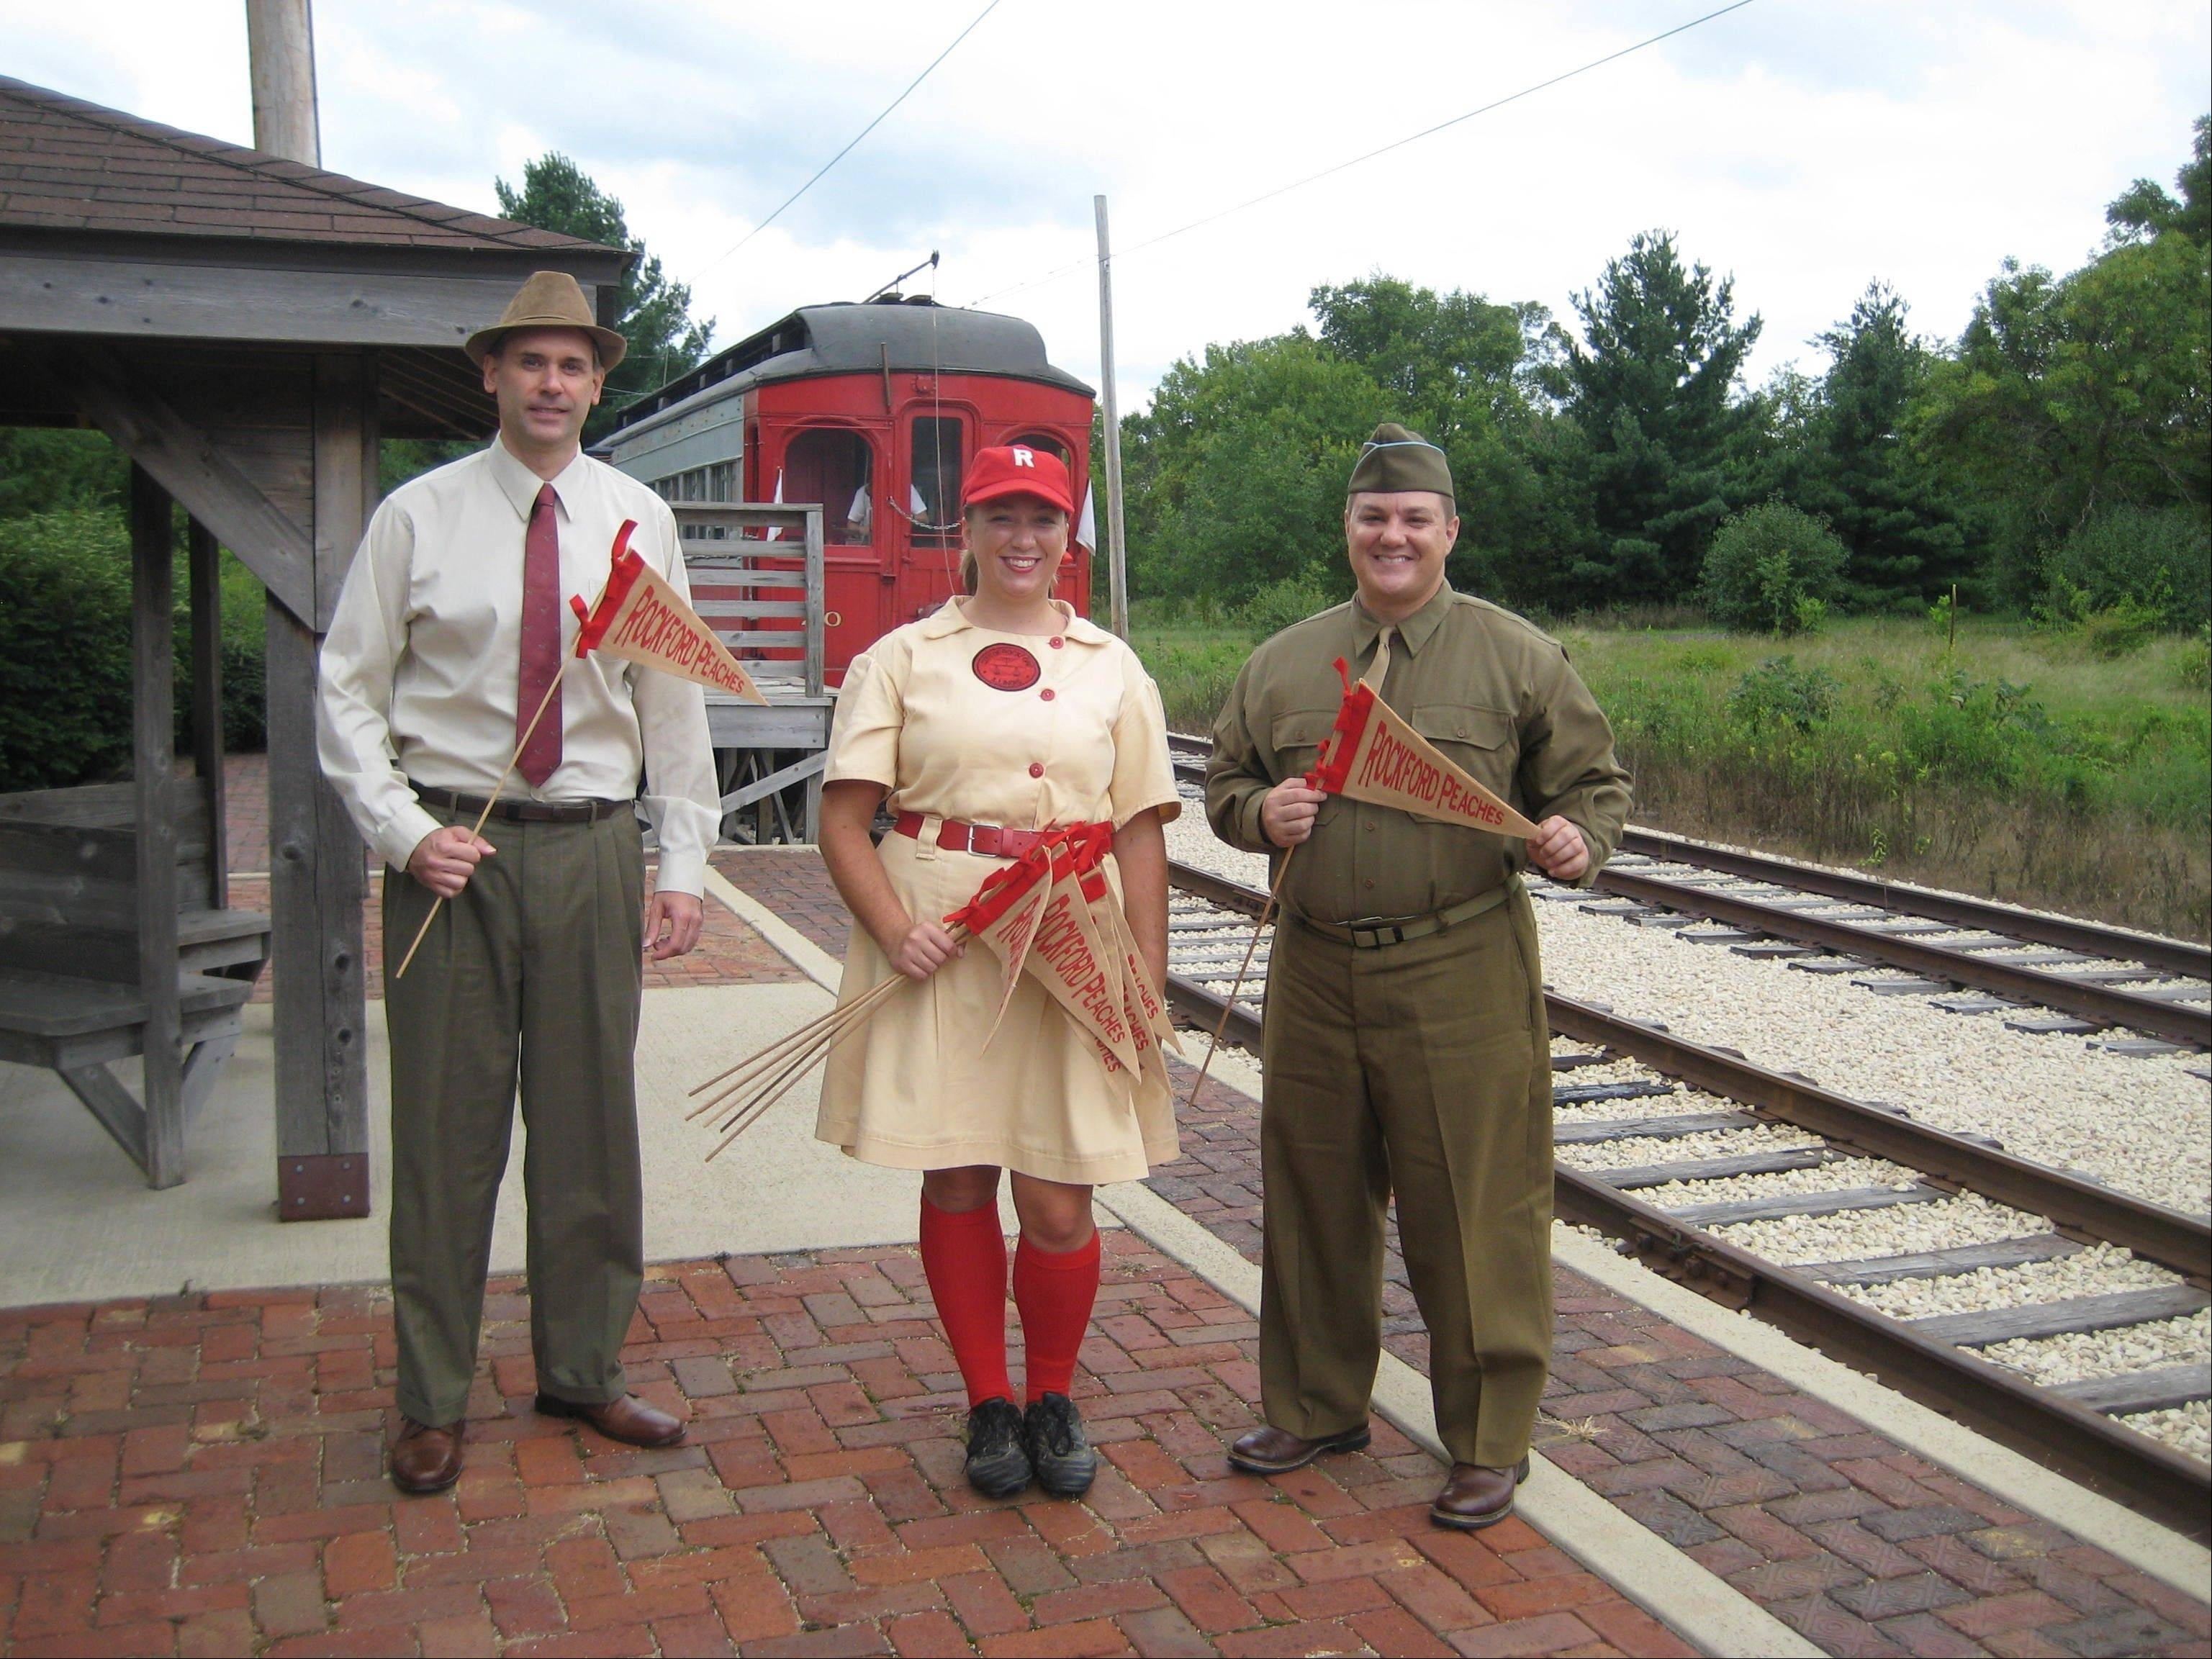 Nicole Stadie, Dan Reycraft and a third re-enactor pose before departing via trolley for the All American Girls baseball game. The game was part of the Fox Trolley Museum's living history event last year.